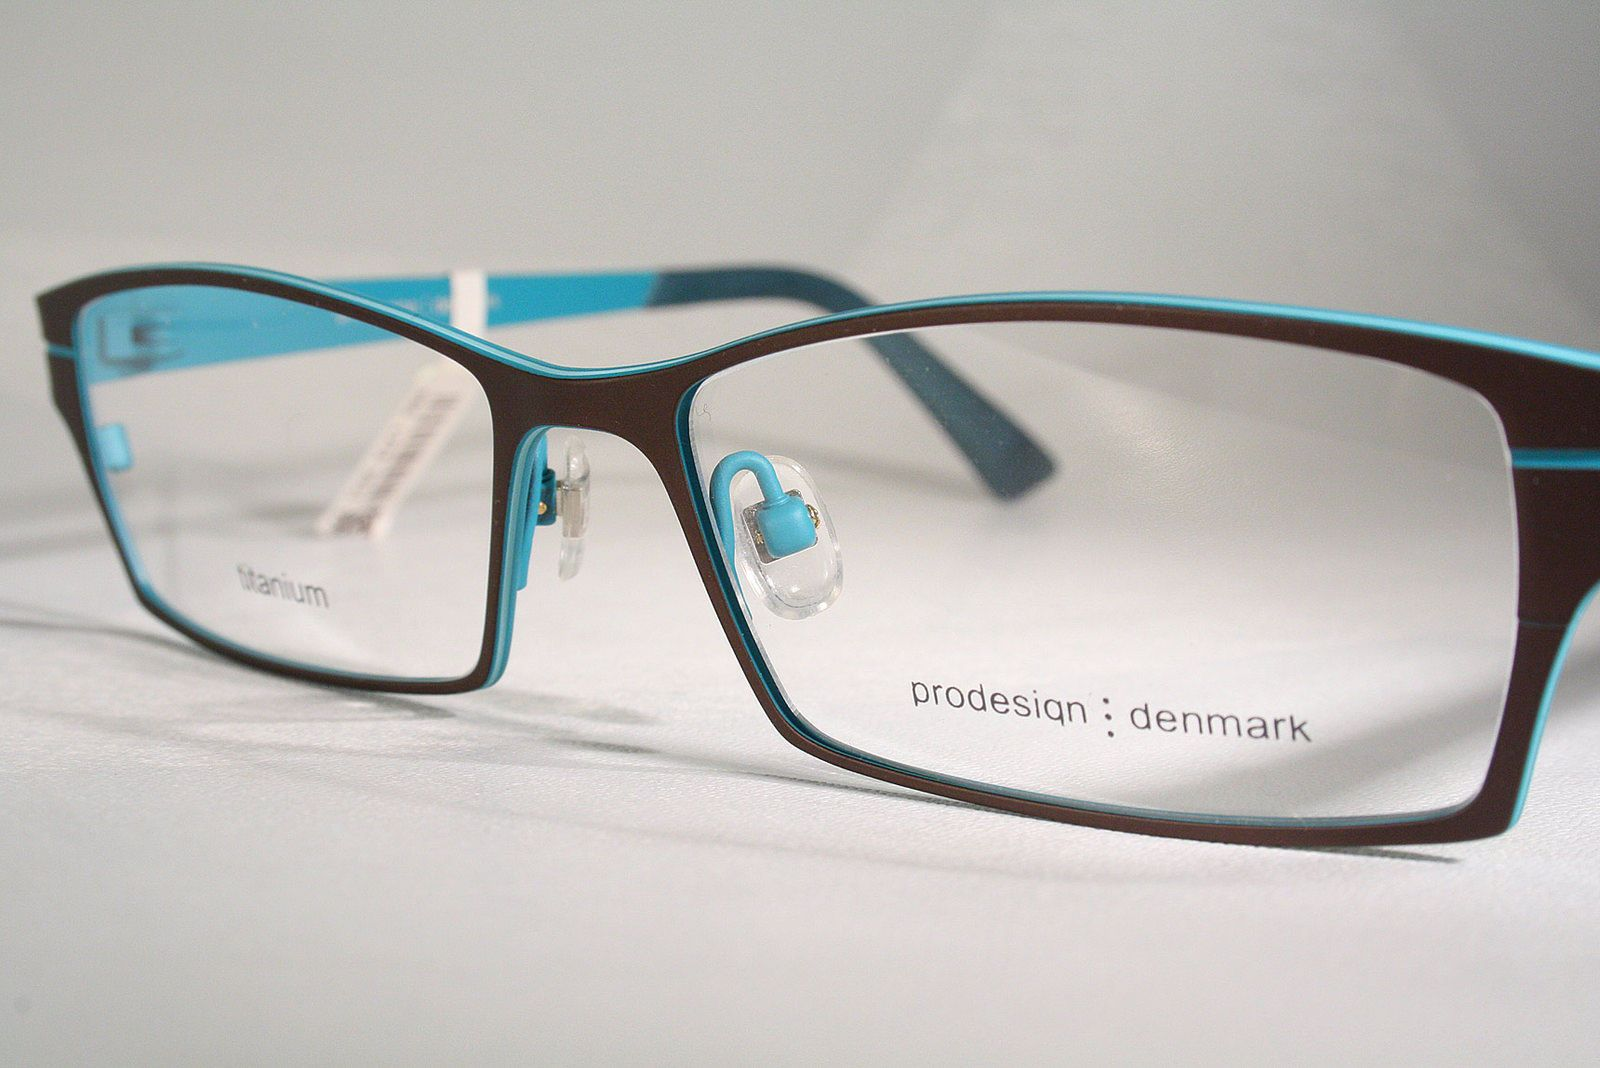 TITANIUM Antiallergenic Danish PRODESIGN Eyeglass Frames Glasses ...